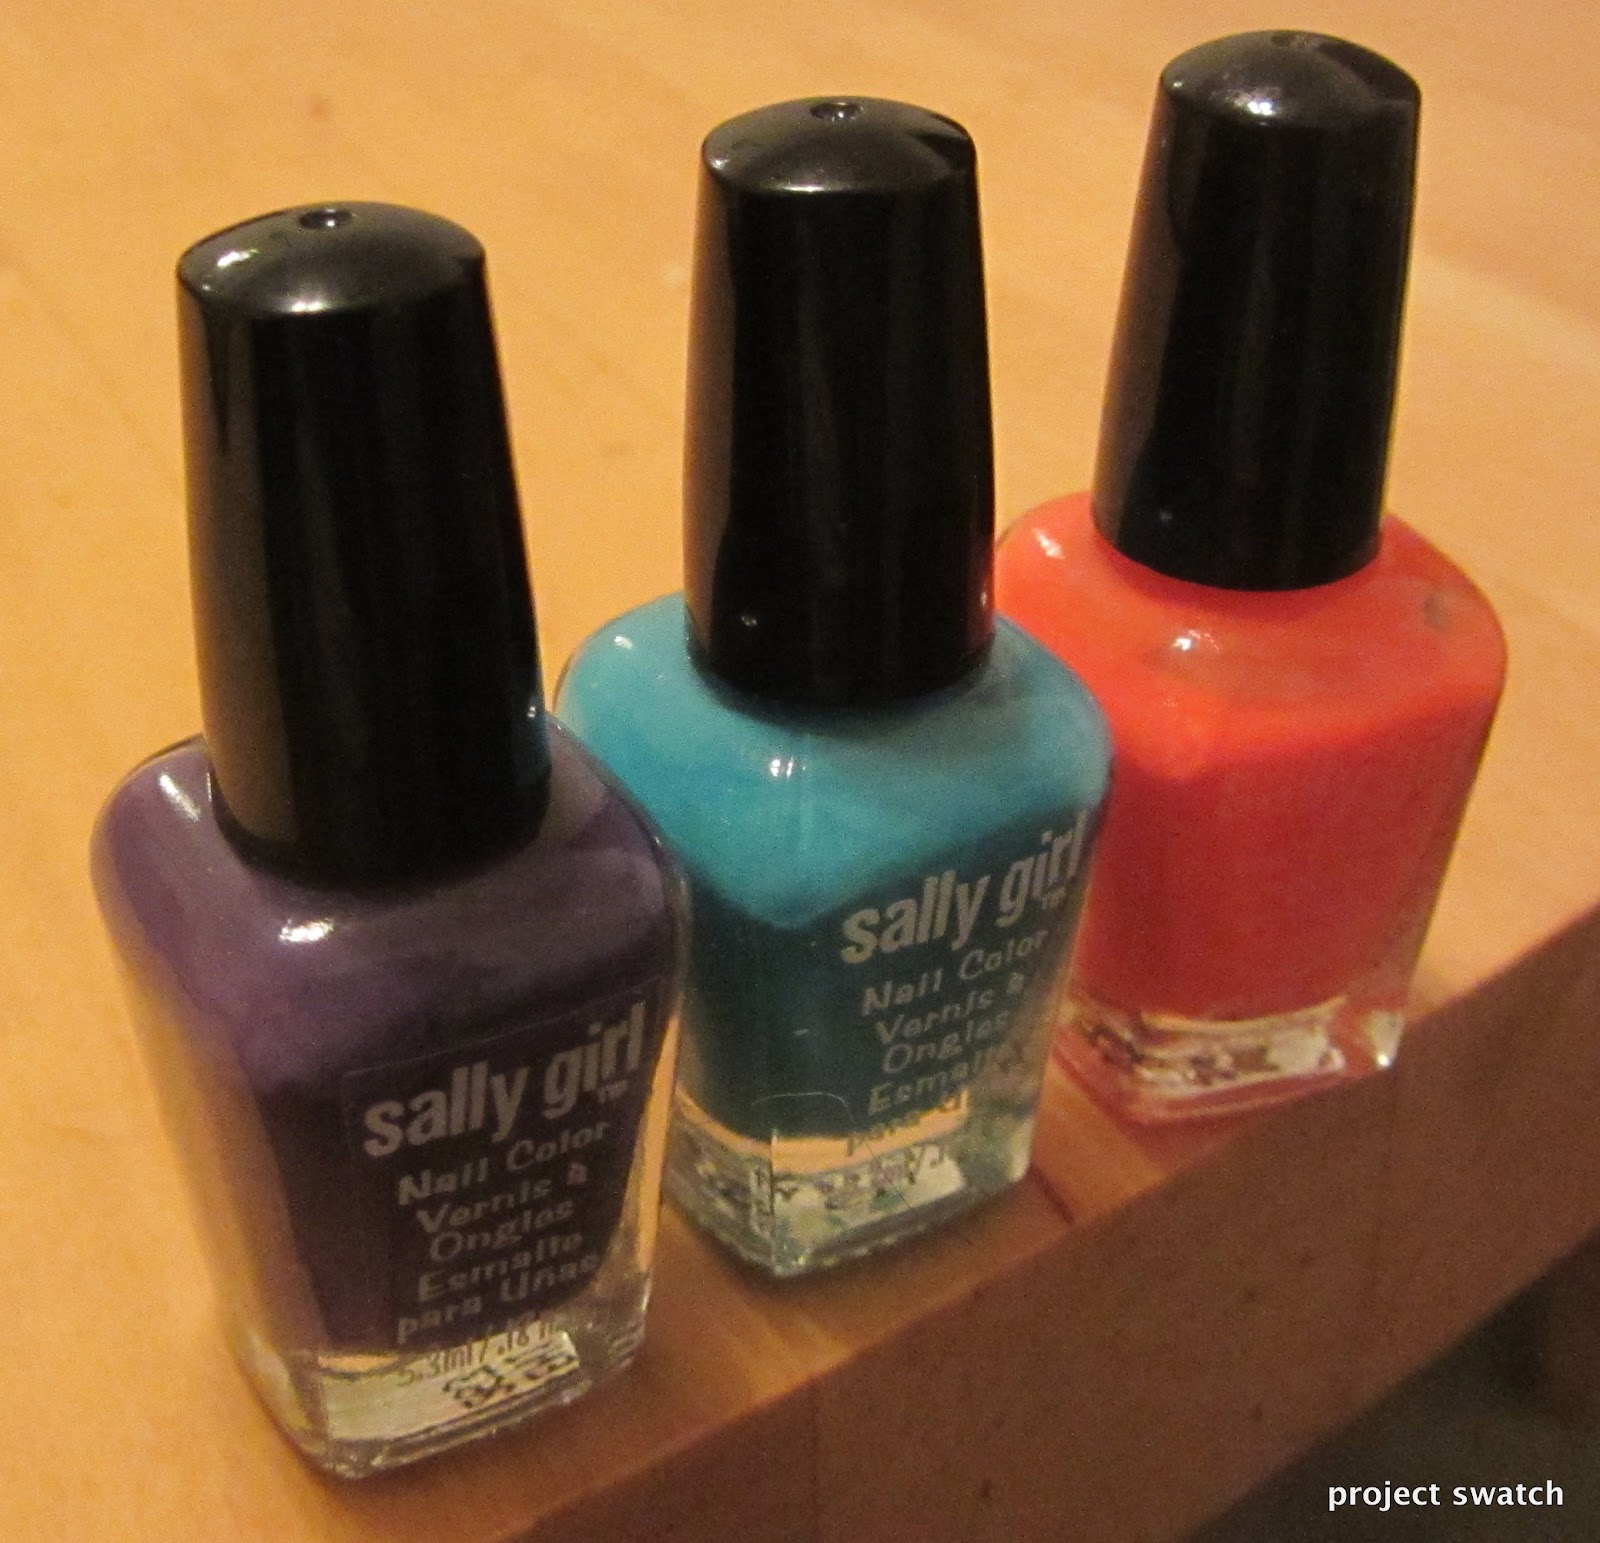 Sally Girl Nail Polish Minis Review, Swatches, Photos - Project Swatch